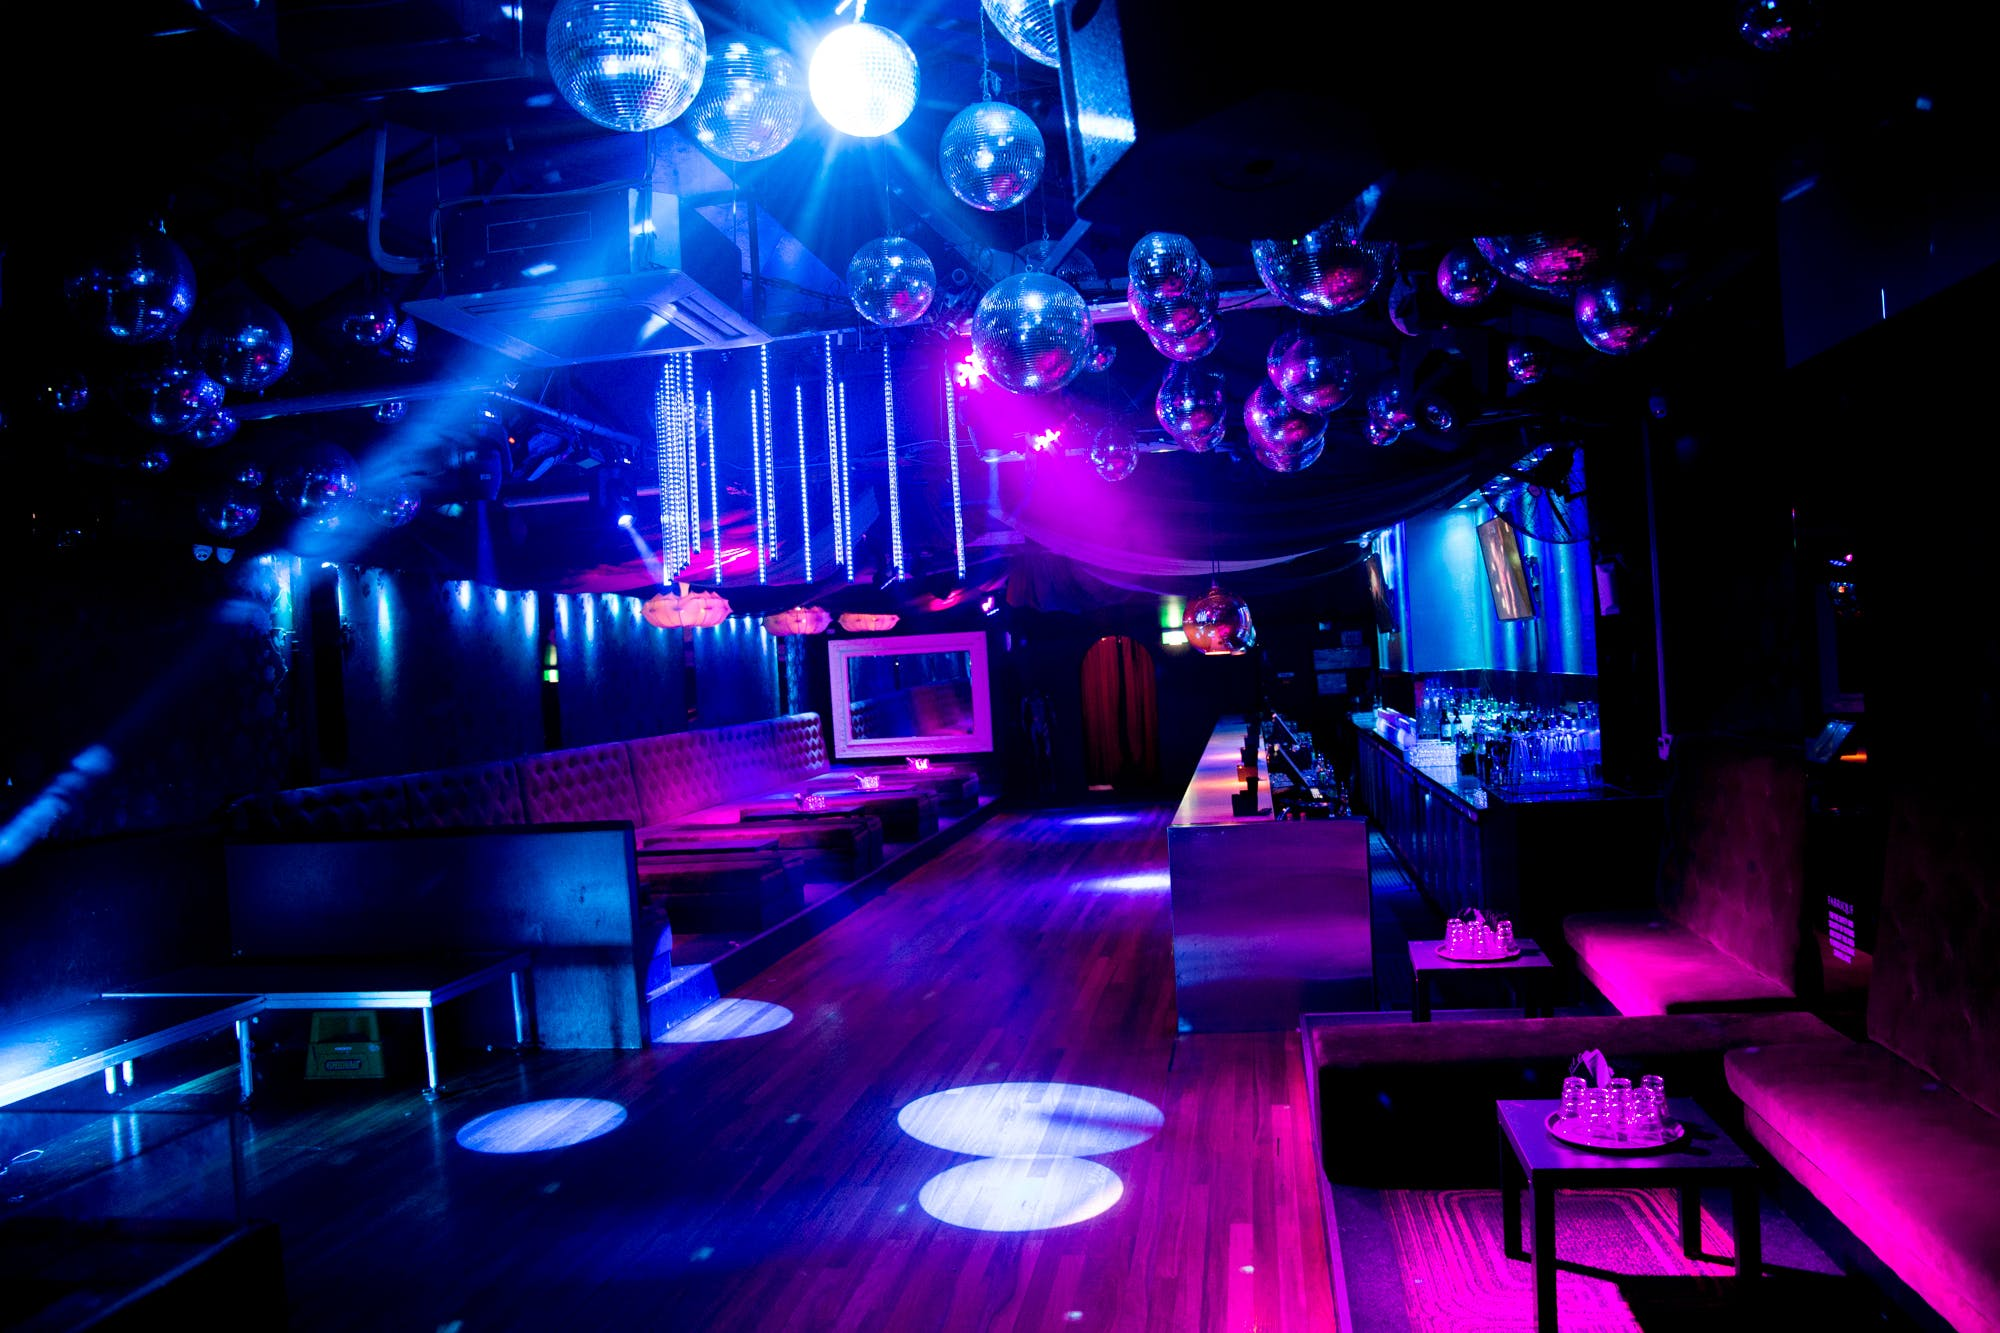 Event Space, function room at Fabrique Bar, image 5